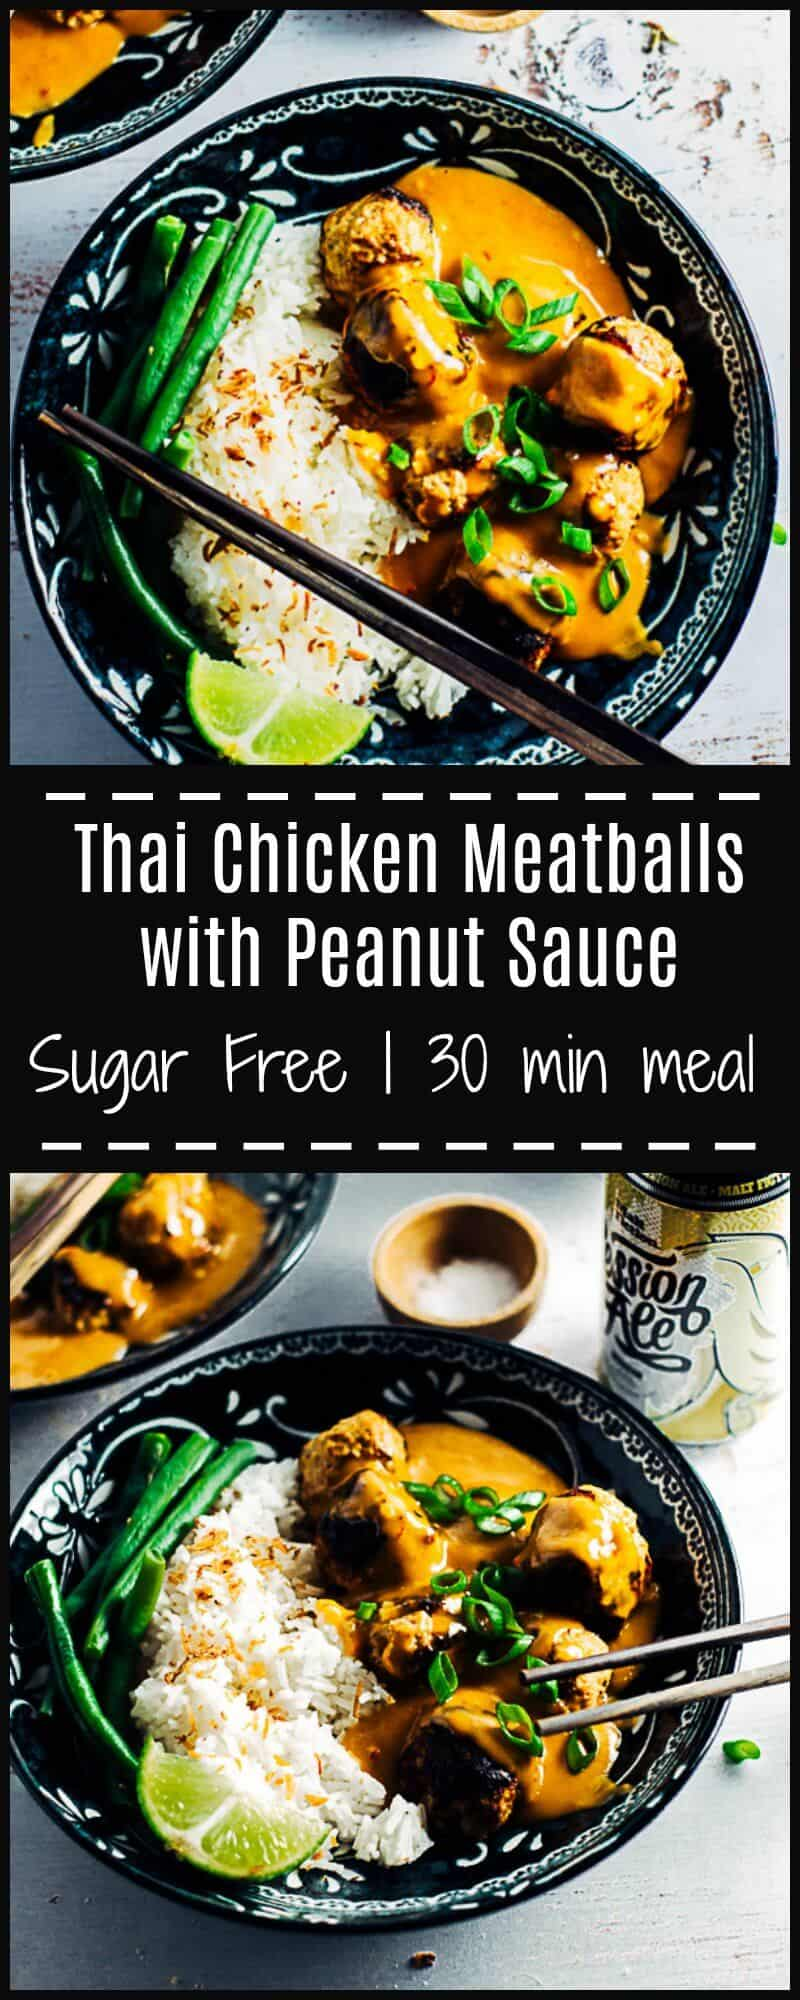 These Thai Chicken Meatballs with Peanut Sauce are lightly spiced, juicy and melt in your mouth, & the peanut sauce is so deliciously moreish you'll want to lick the plate.